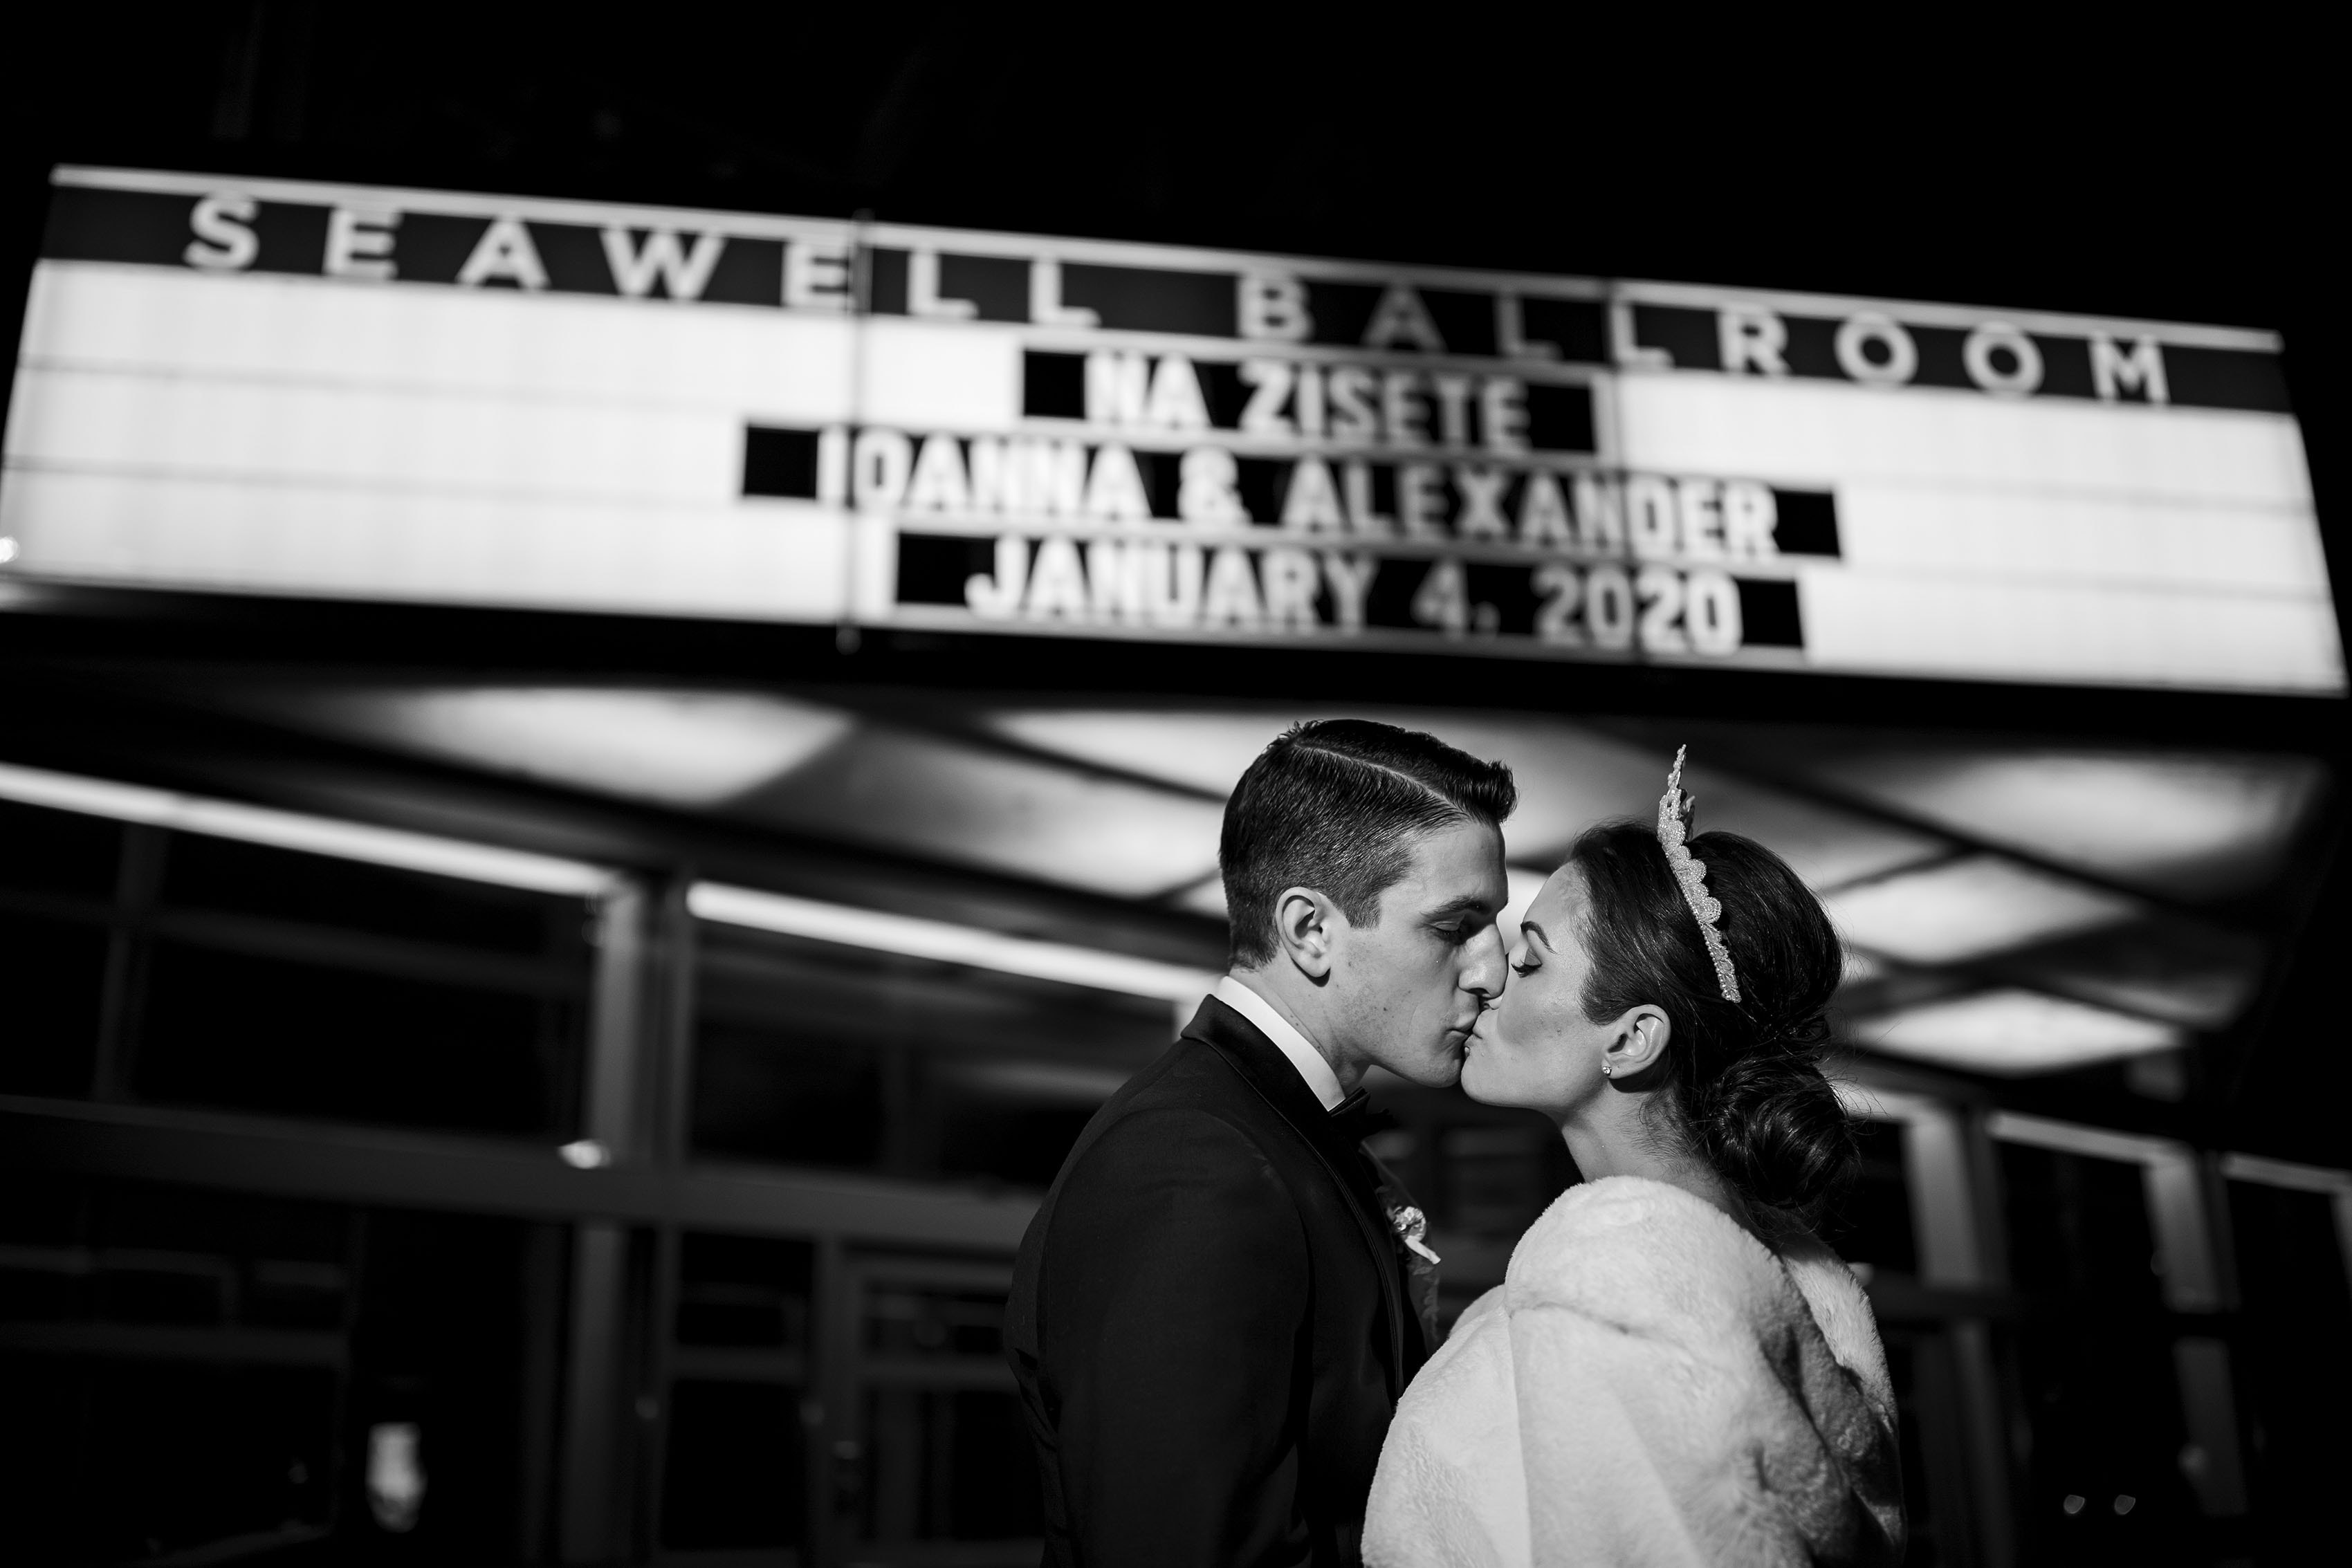 Ioanna and Alex share a kiss outside the Seawell Ballroom during wedding at the Denver Center for the Performing Arts in Denver